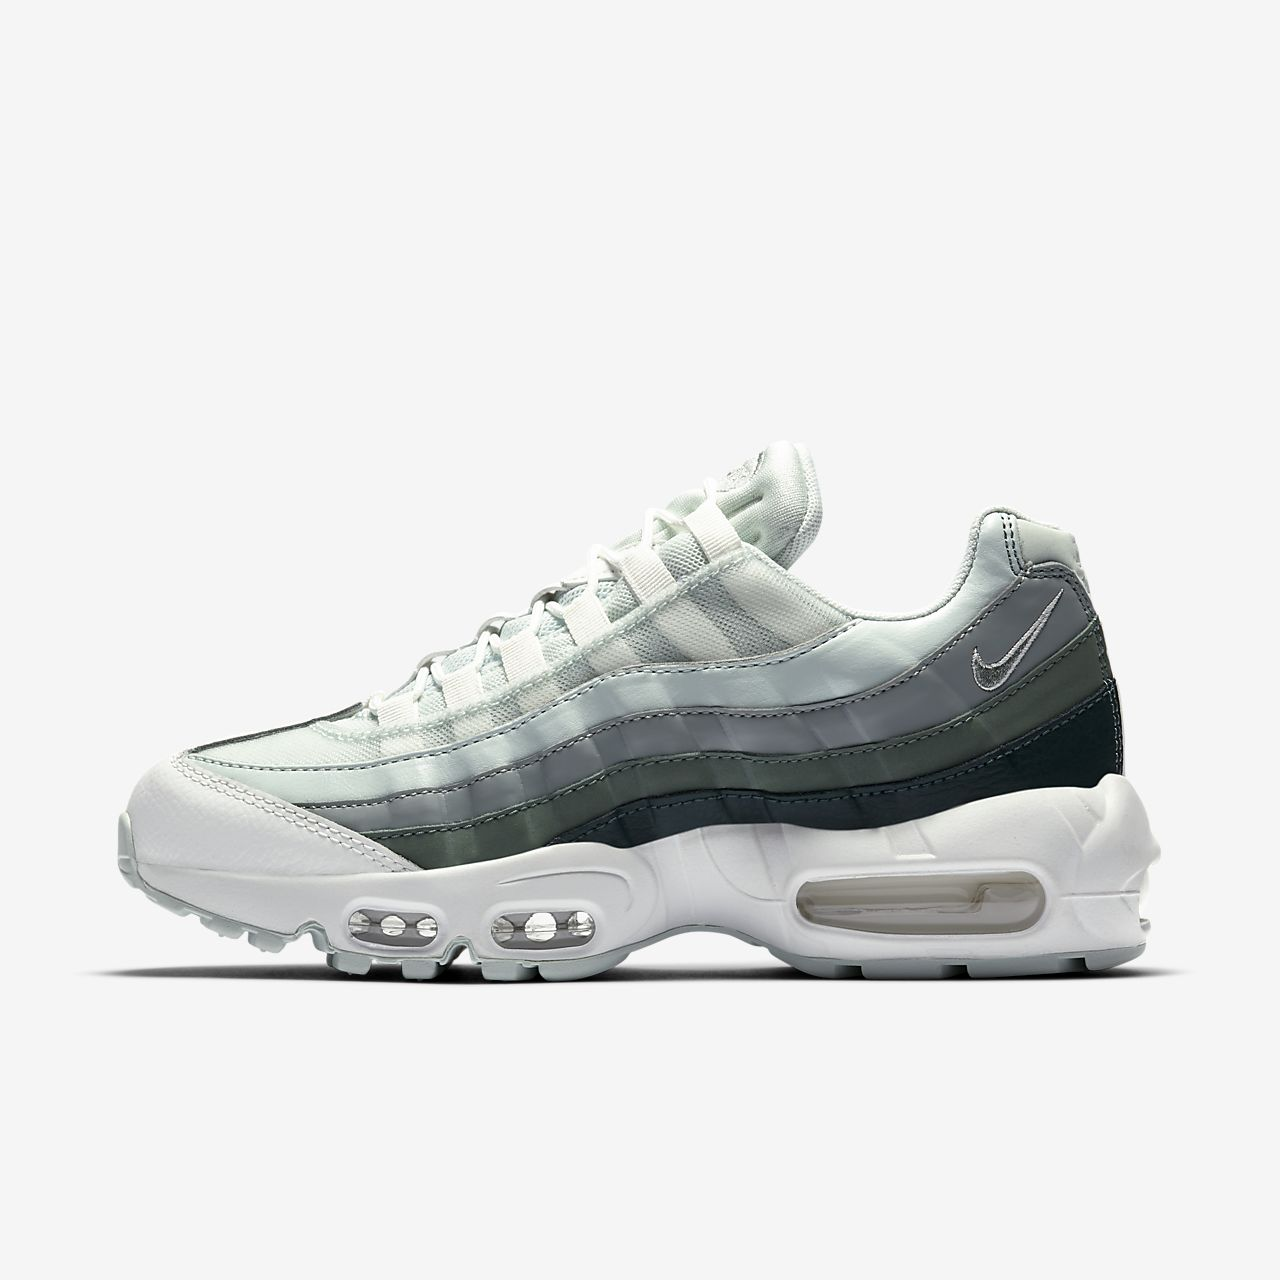 Buy air max 95 green and grey > Up to 44% Discounts